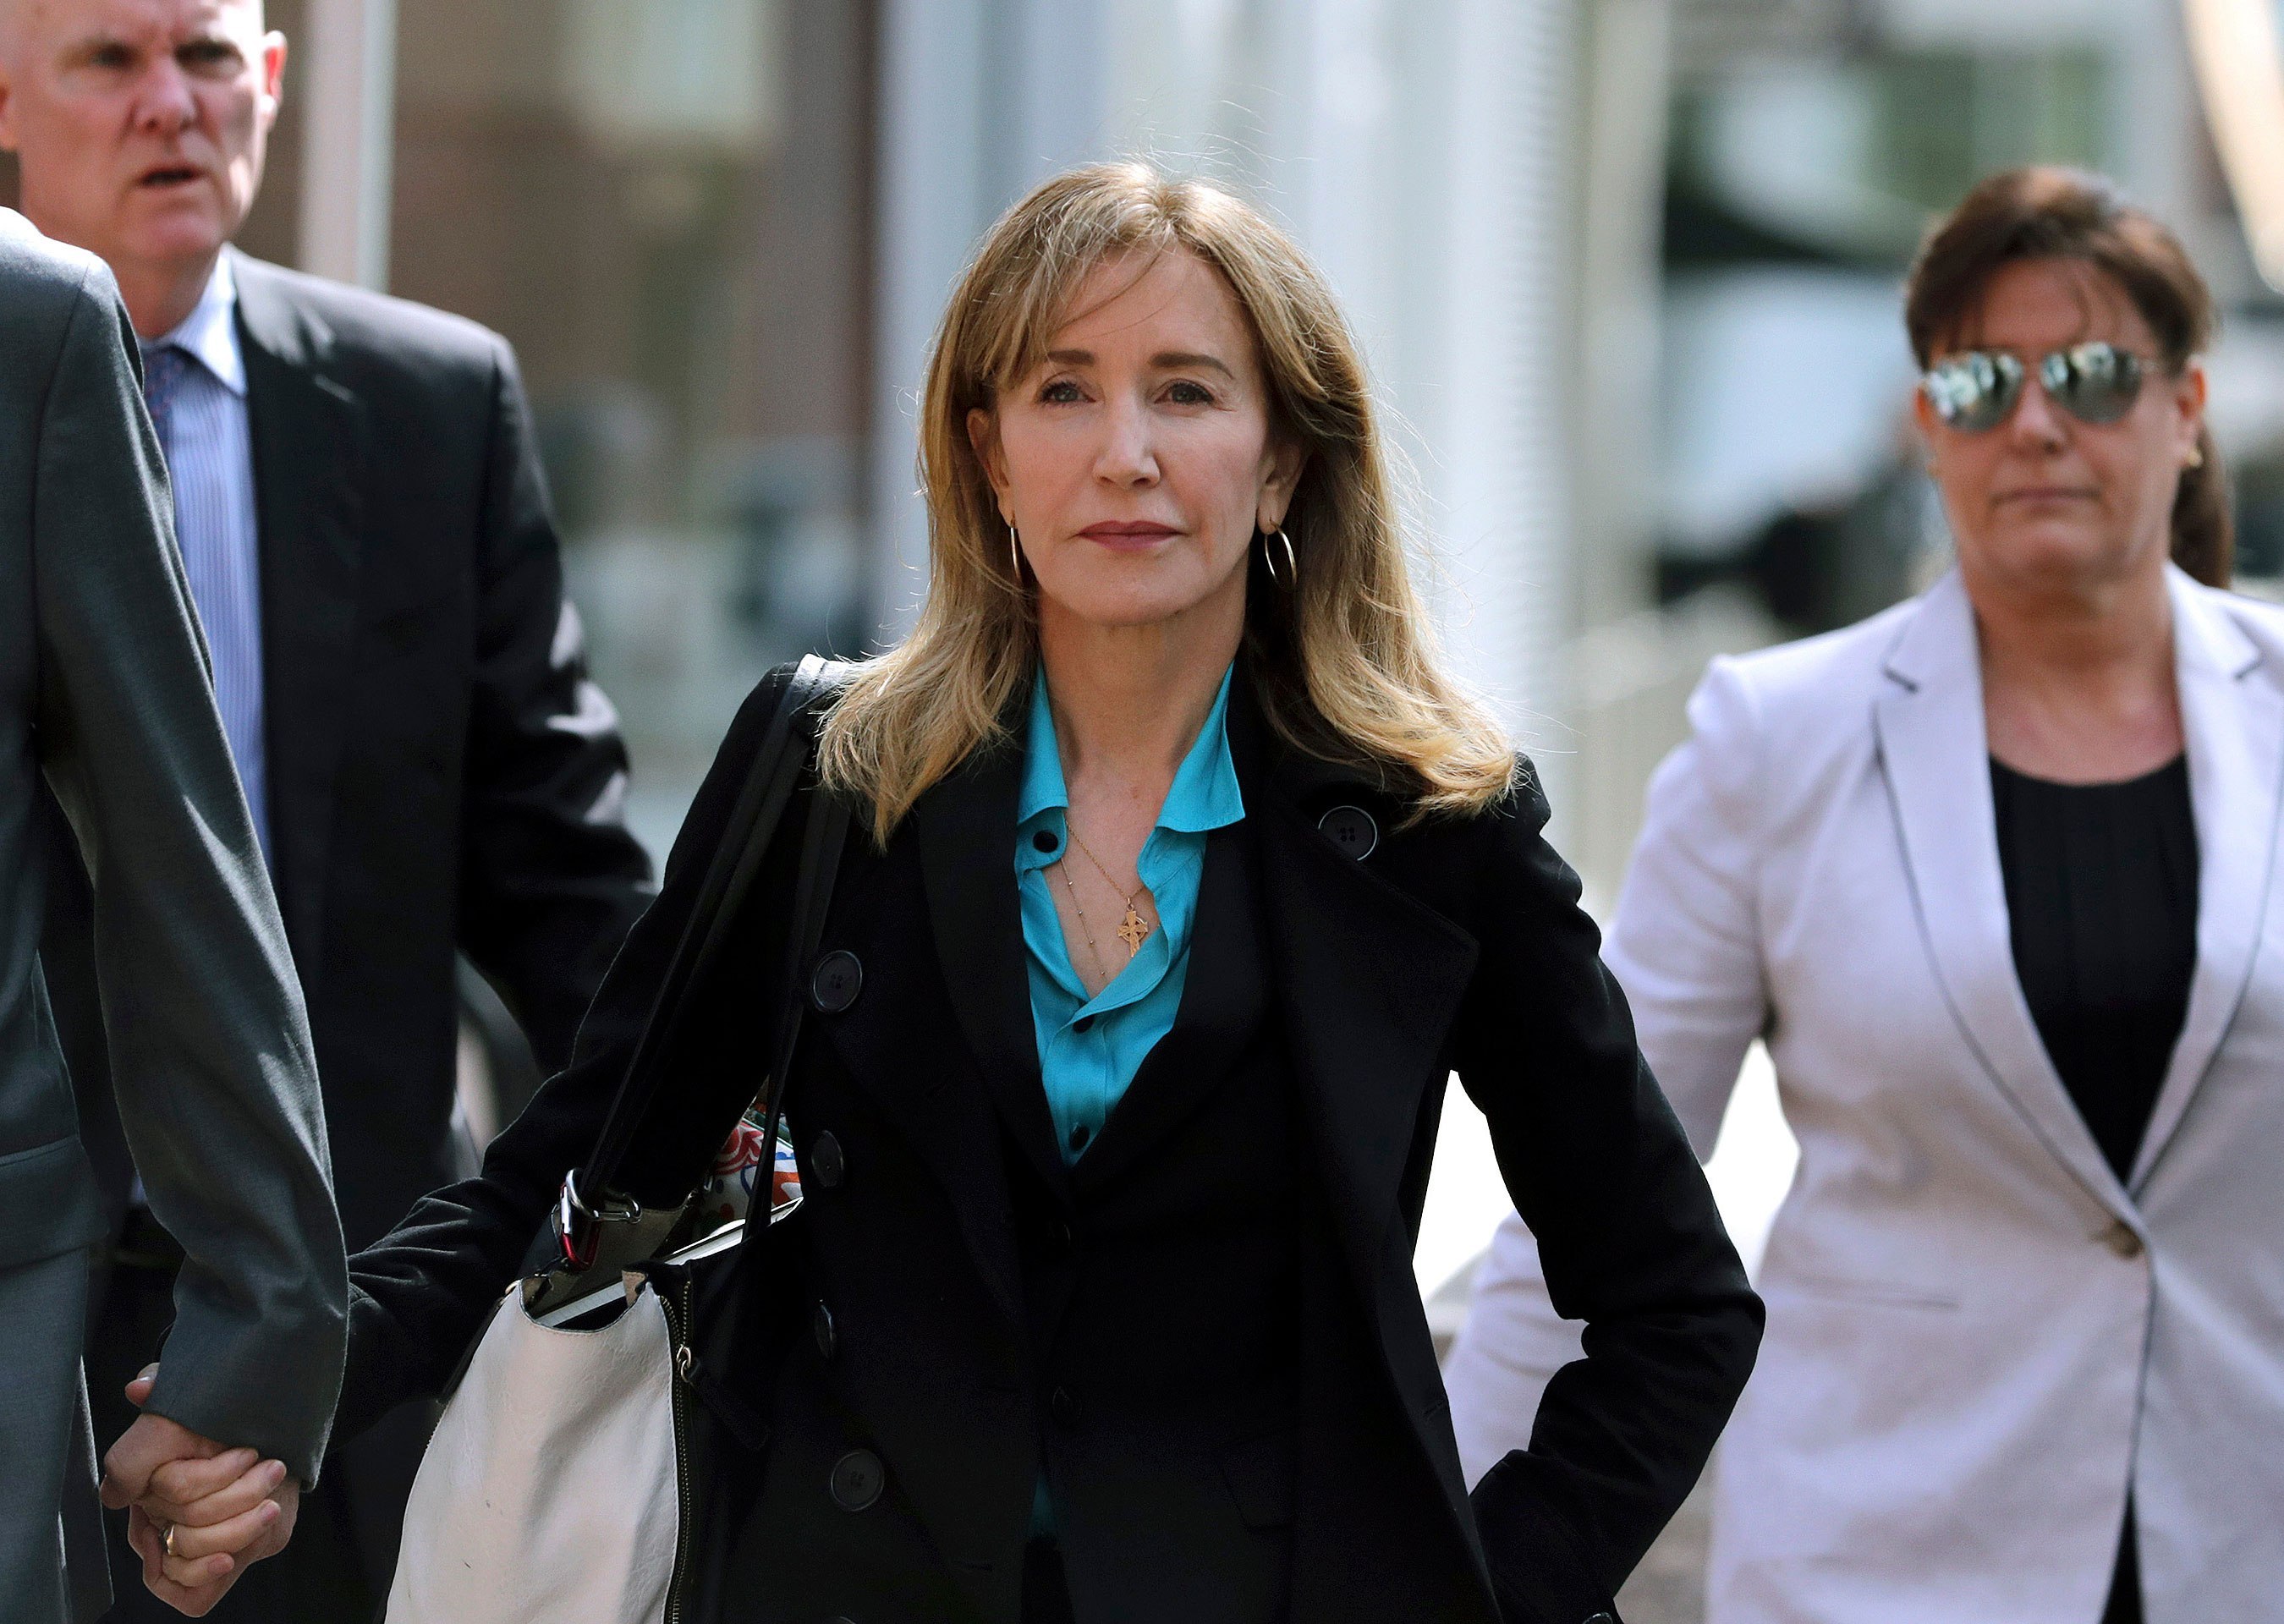 Mandatory Credit: Photo by Charles Krupa/AP/Shutterstock (10185765e) Actress Felicity Huffman arrives at federal court in Boston, to face charges in a nationwide college admissions bribery scandal College Admissions-Bribery, Boston, USA - 03 Apr 2019